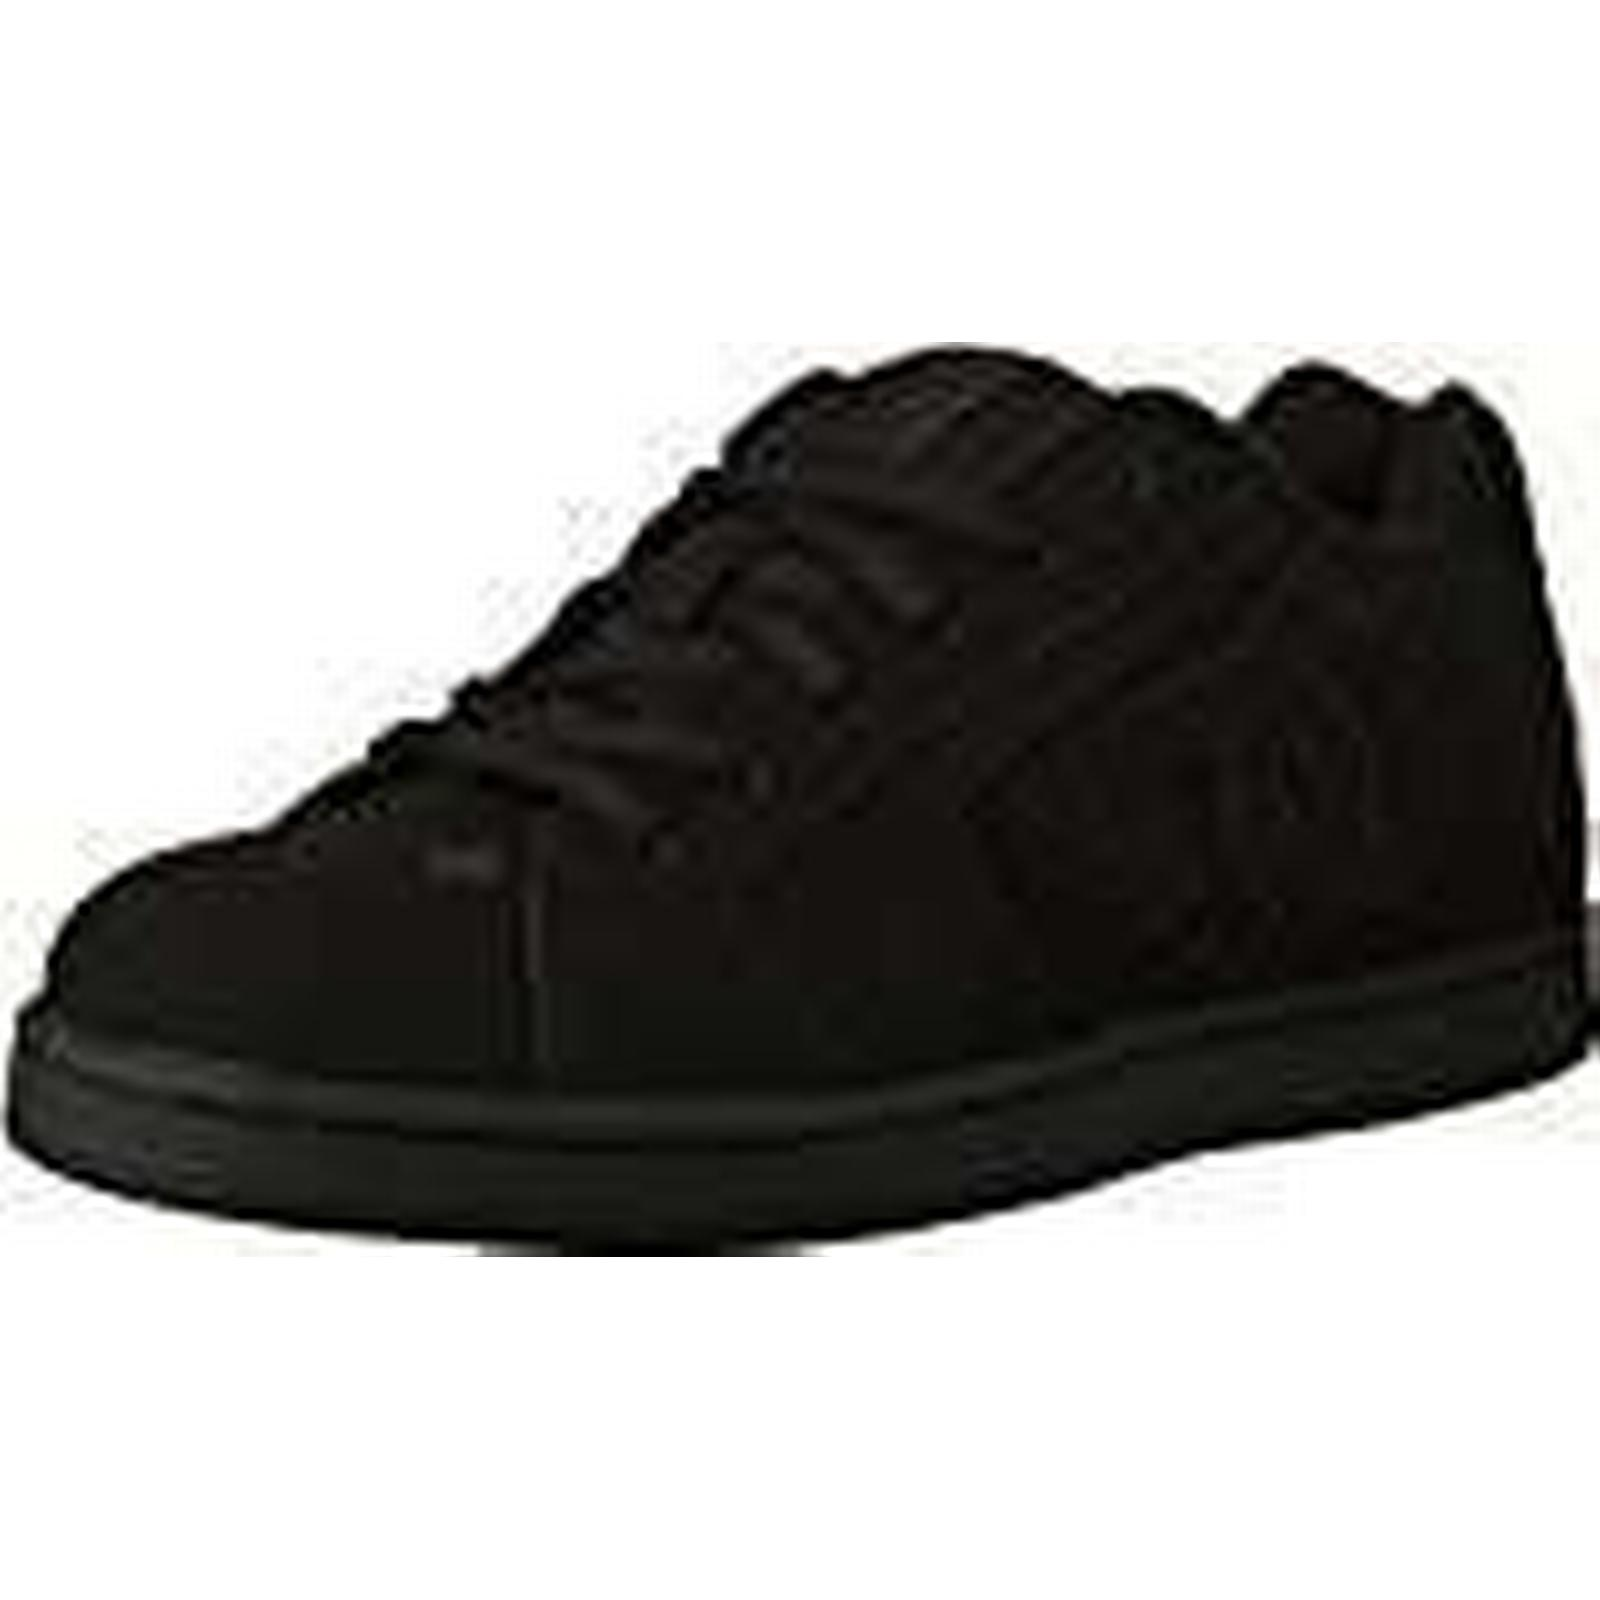 DC Shoes, Net, Men's Skateboarding Shoes, DC Black, Black, 8 UK 5b5f6c